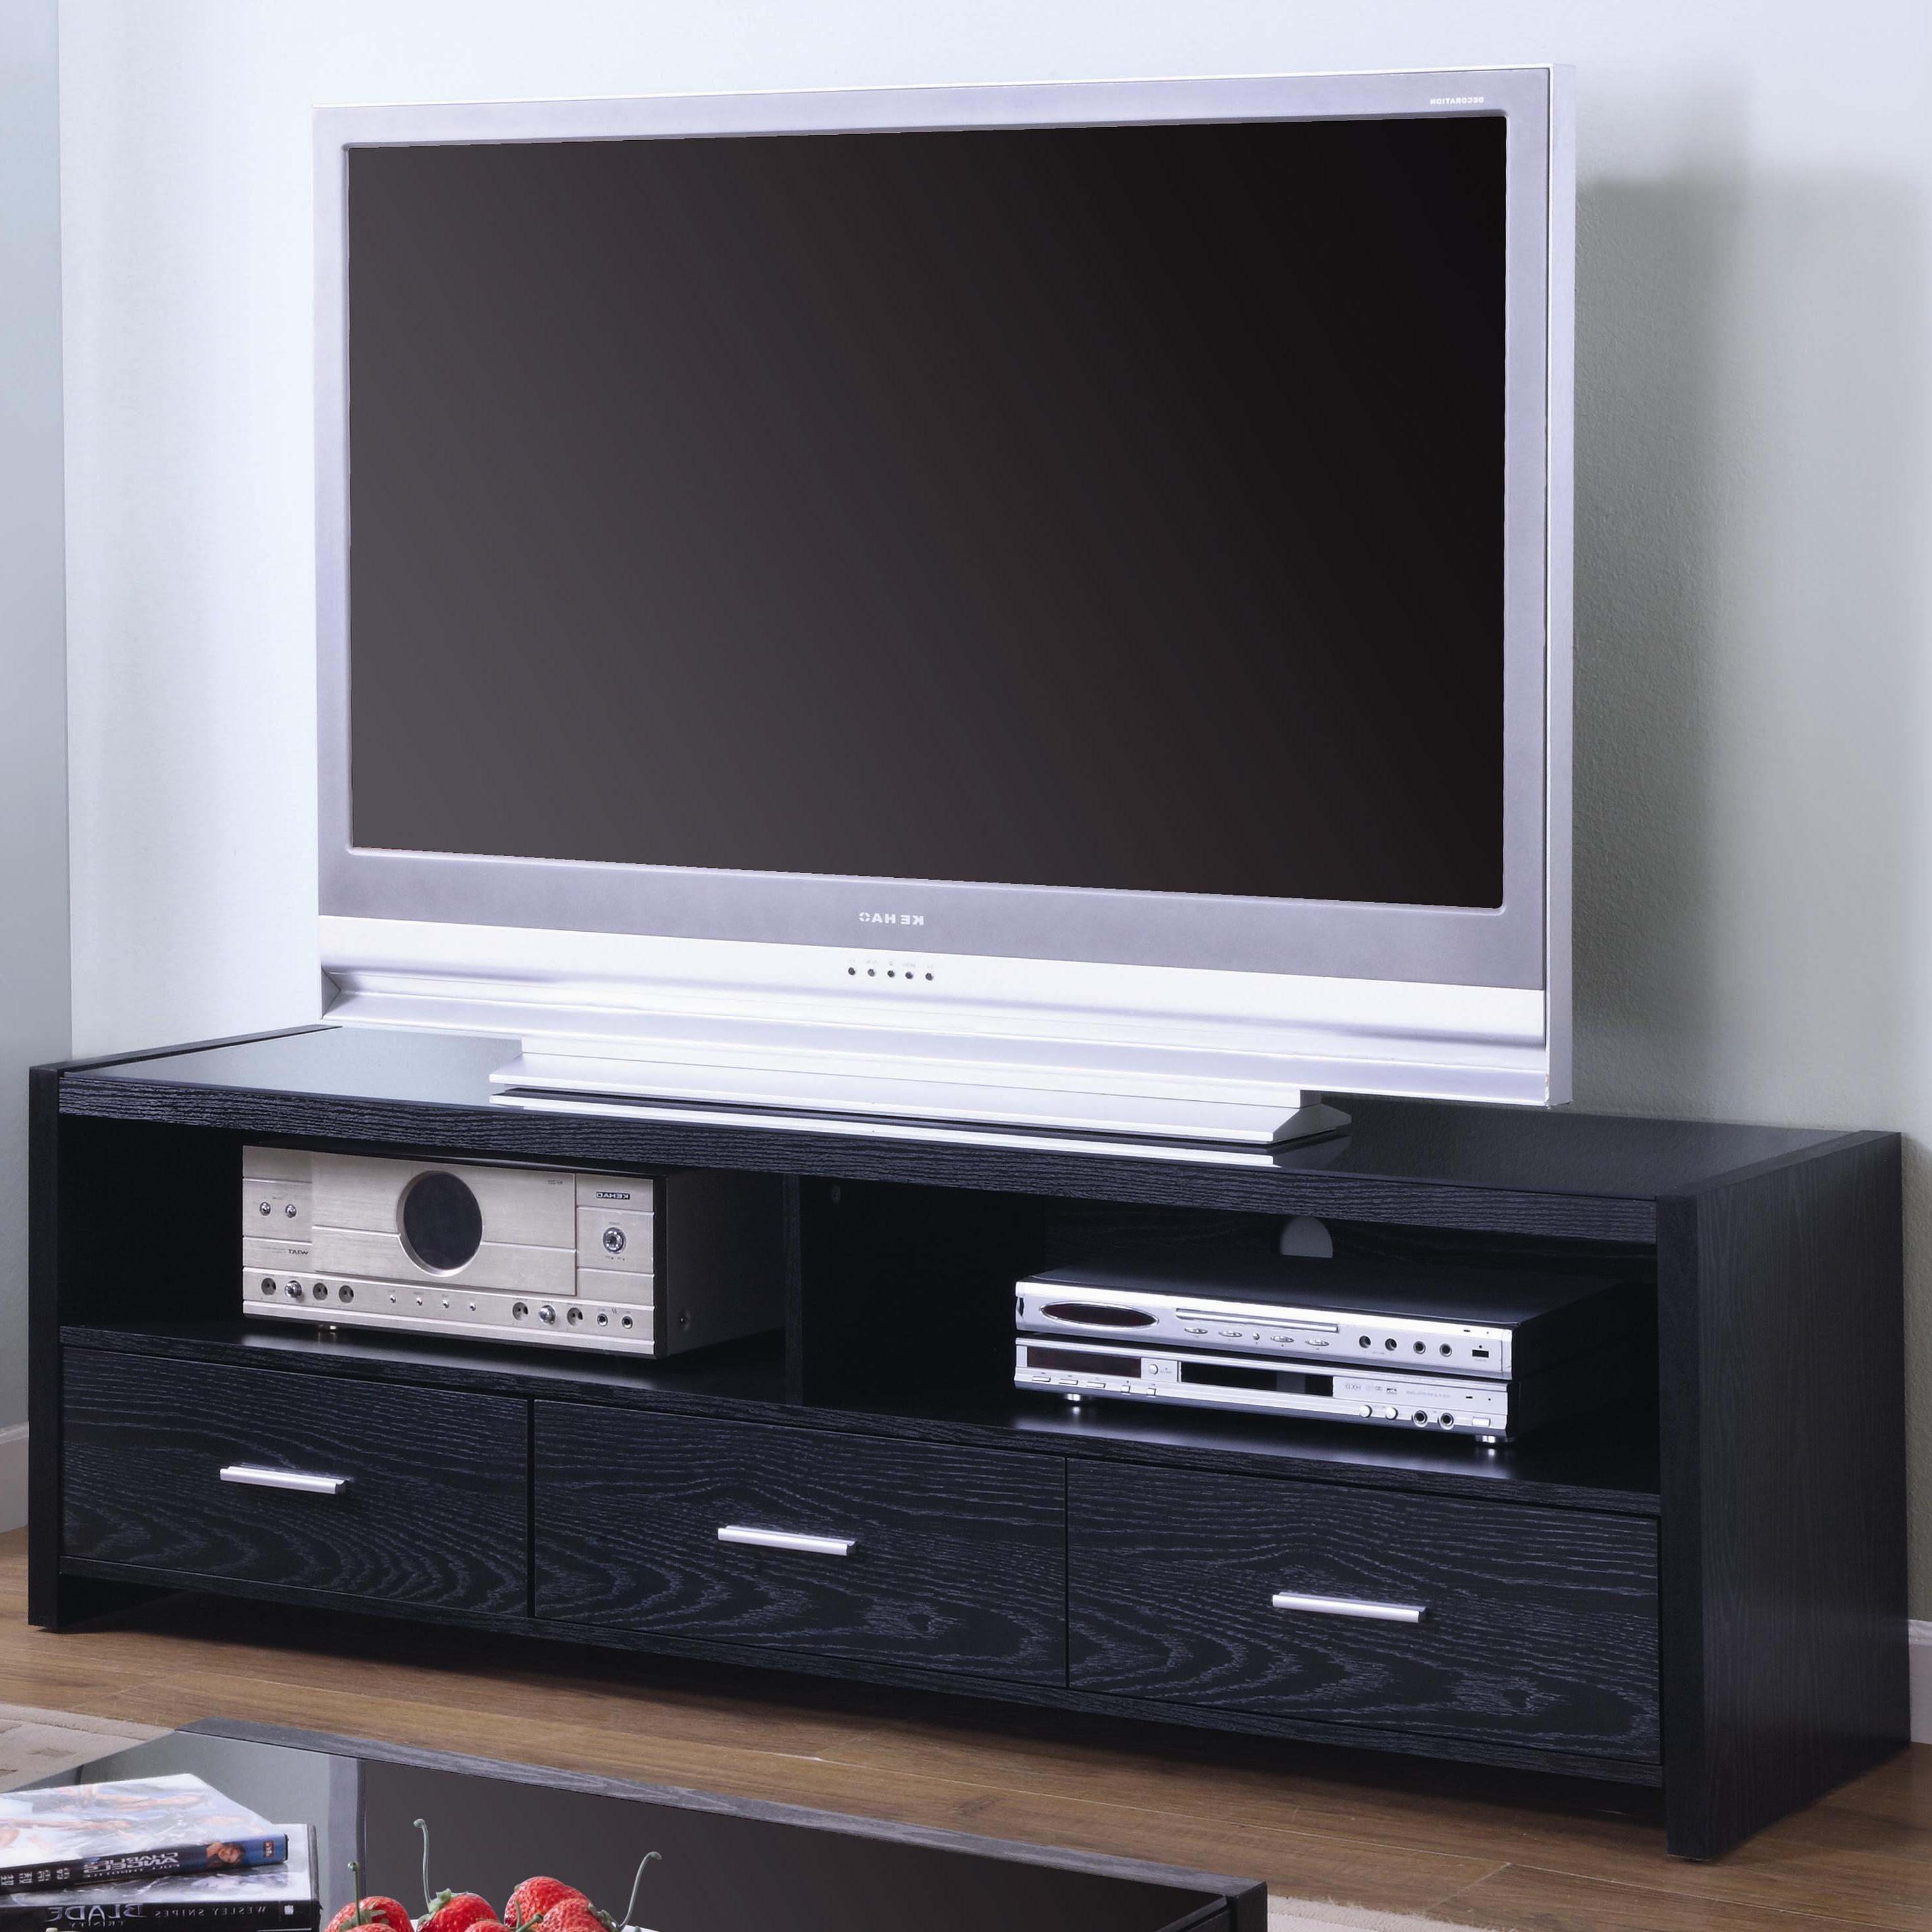 Best And Newest Coaster Tv Stands 700645 Contemporary Media Console With Shelves And Throughout Contemporary Tv Stands For Flat Screens (View 14 of 20)